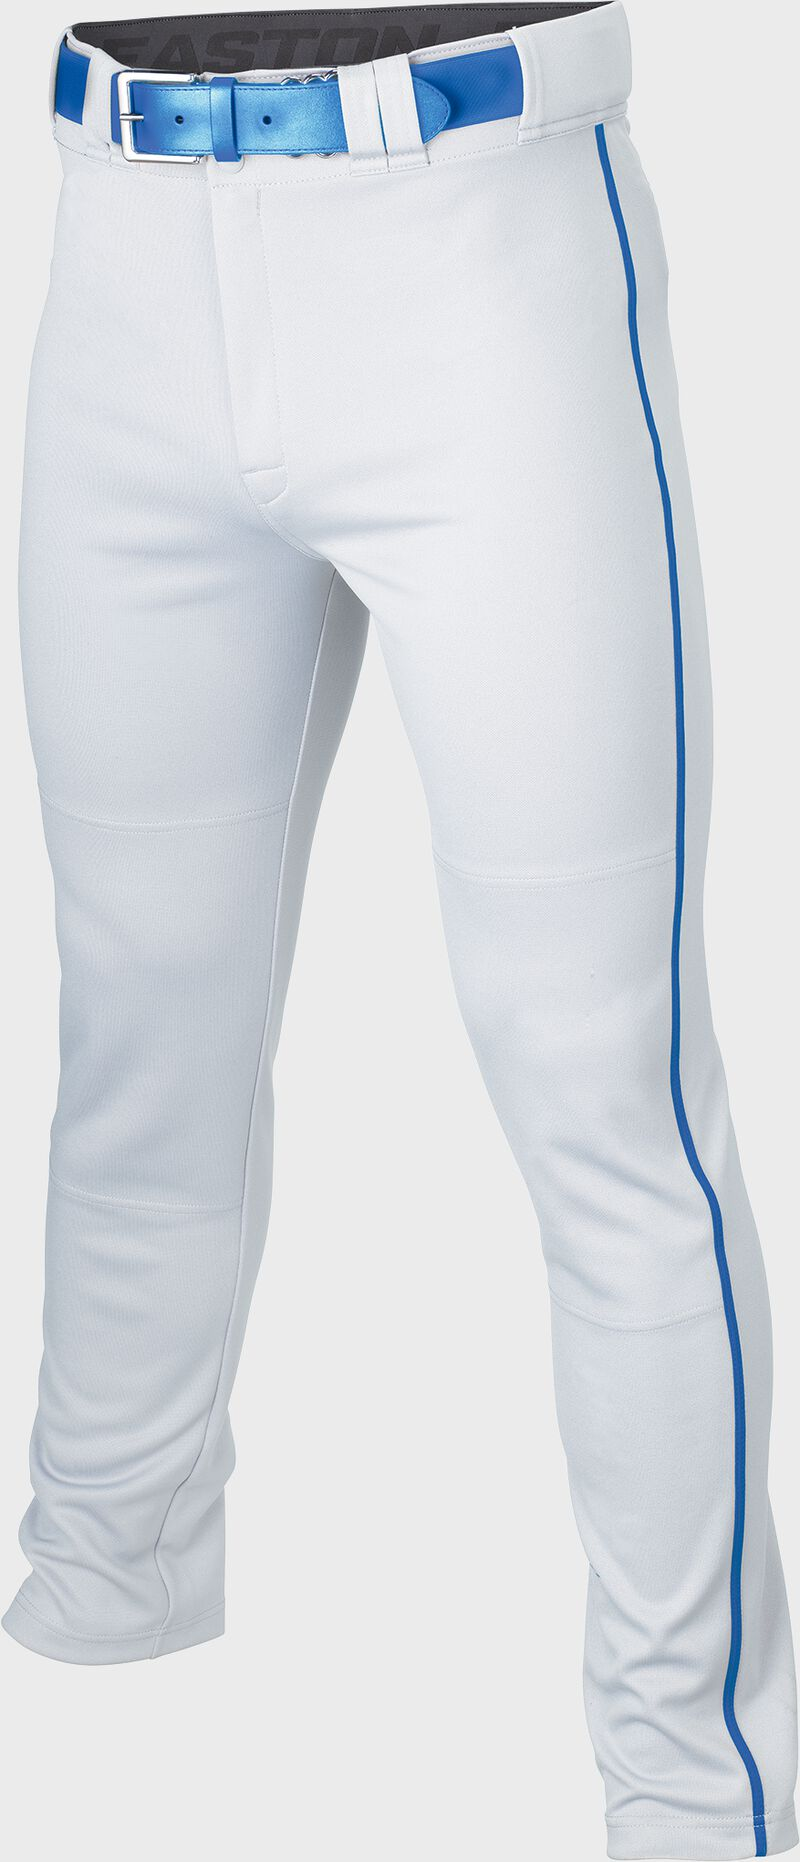 RIVAL+ PANT ADULT PIPED WHITE/ROYAL XL